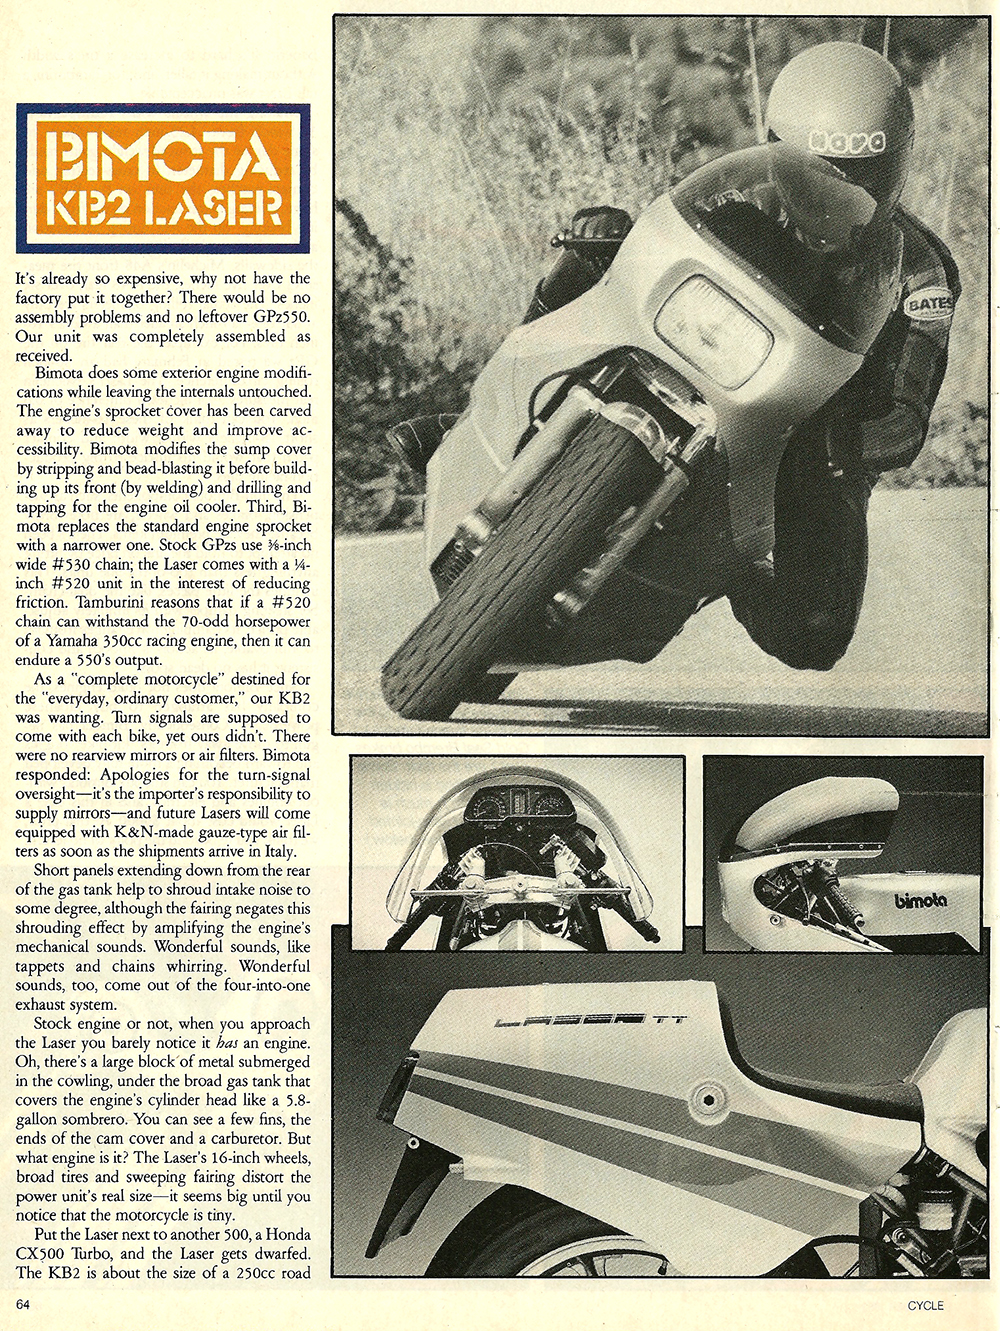 1982 Bimota KB2 Laser road test 7.jpg